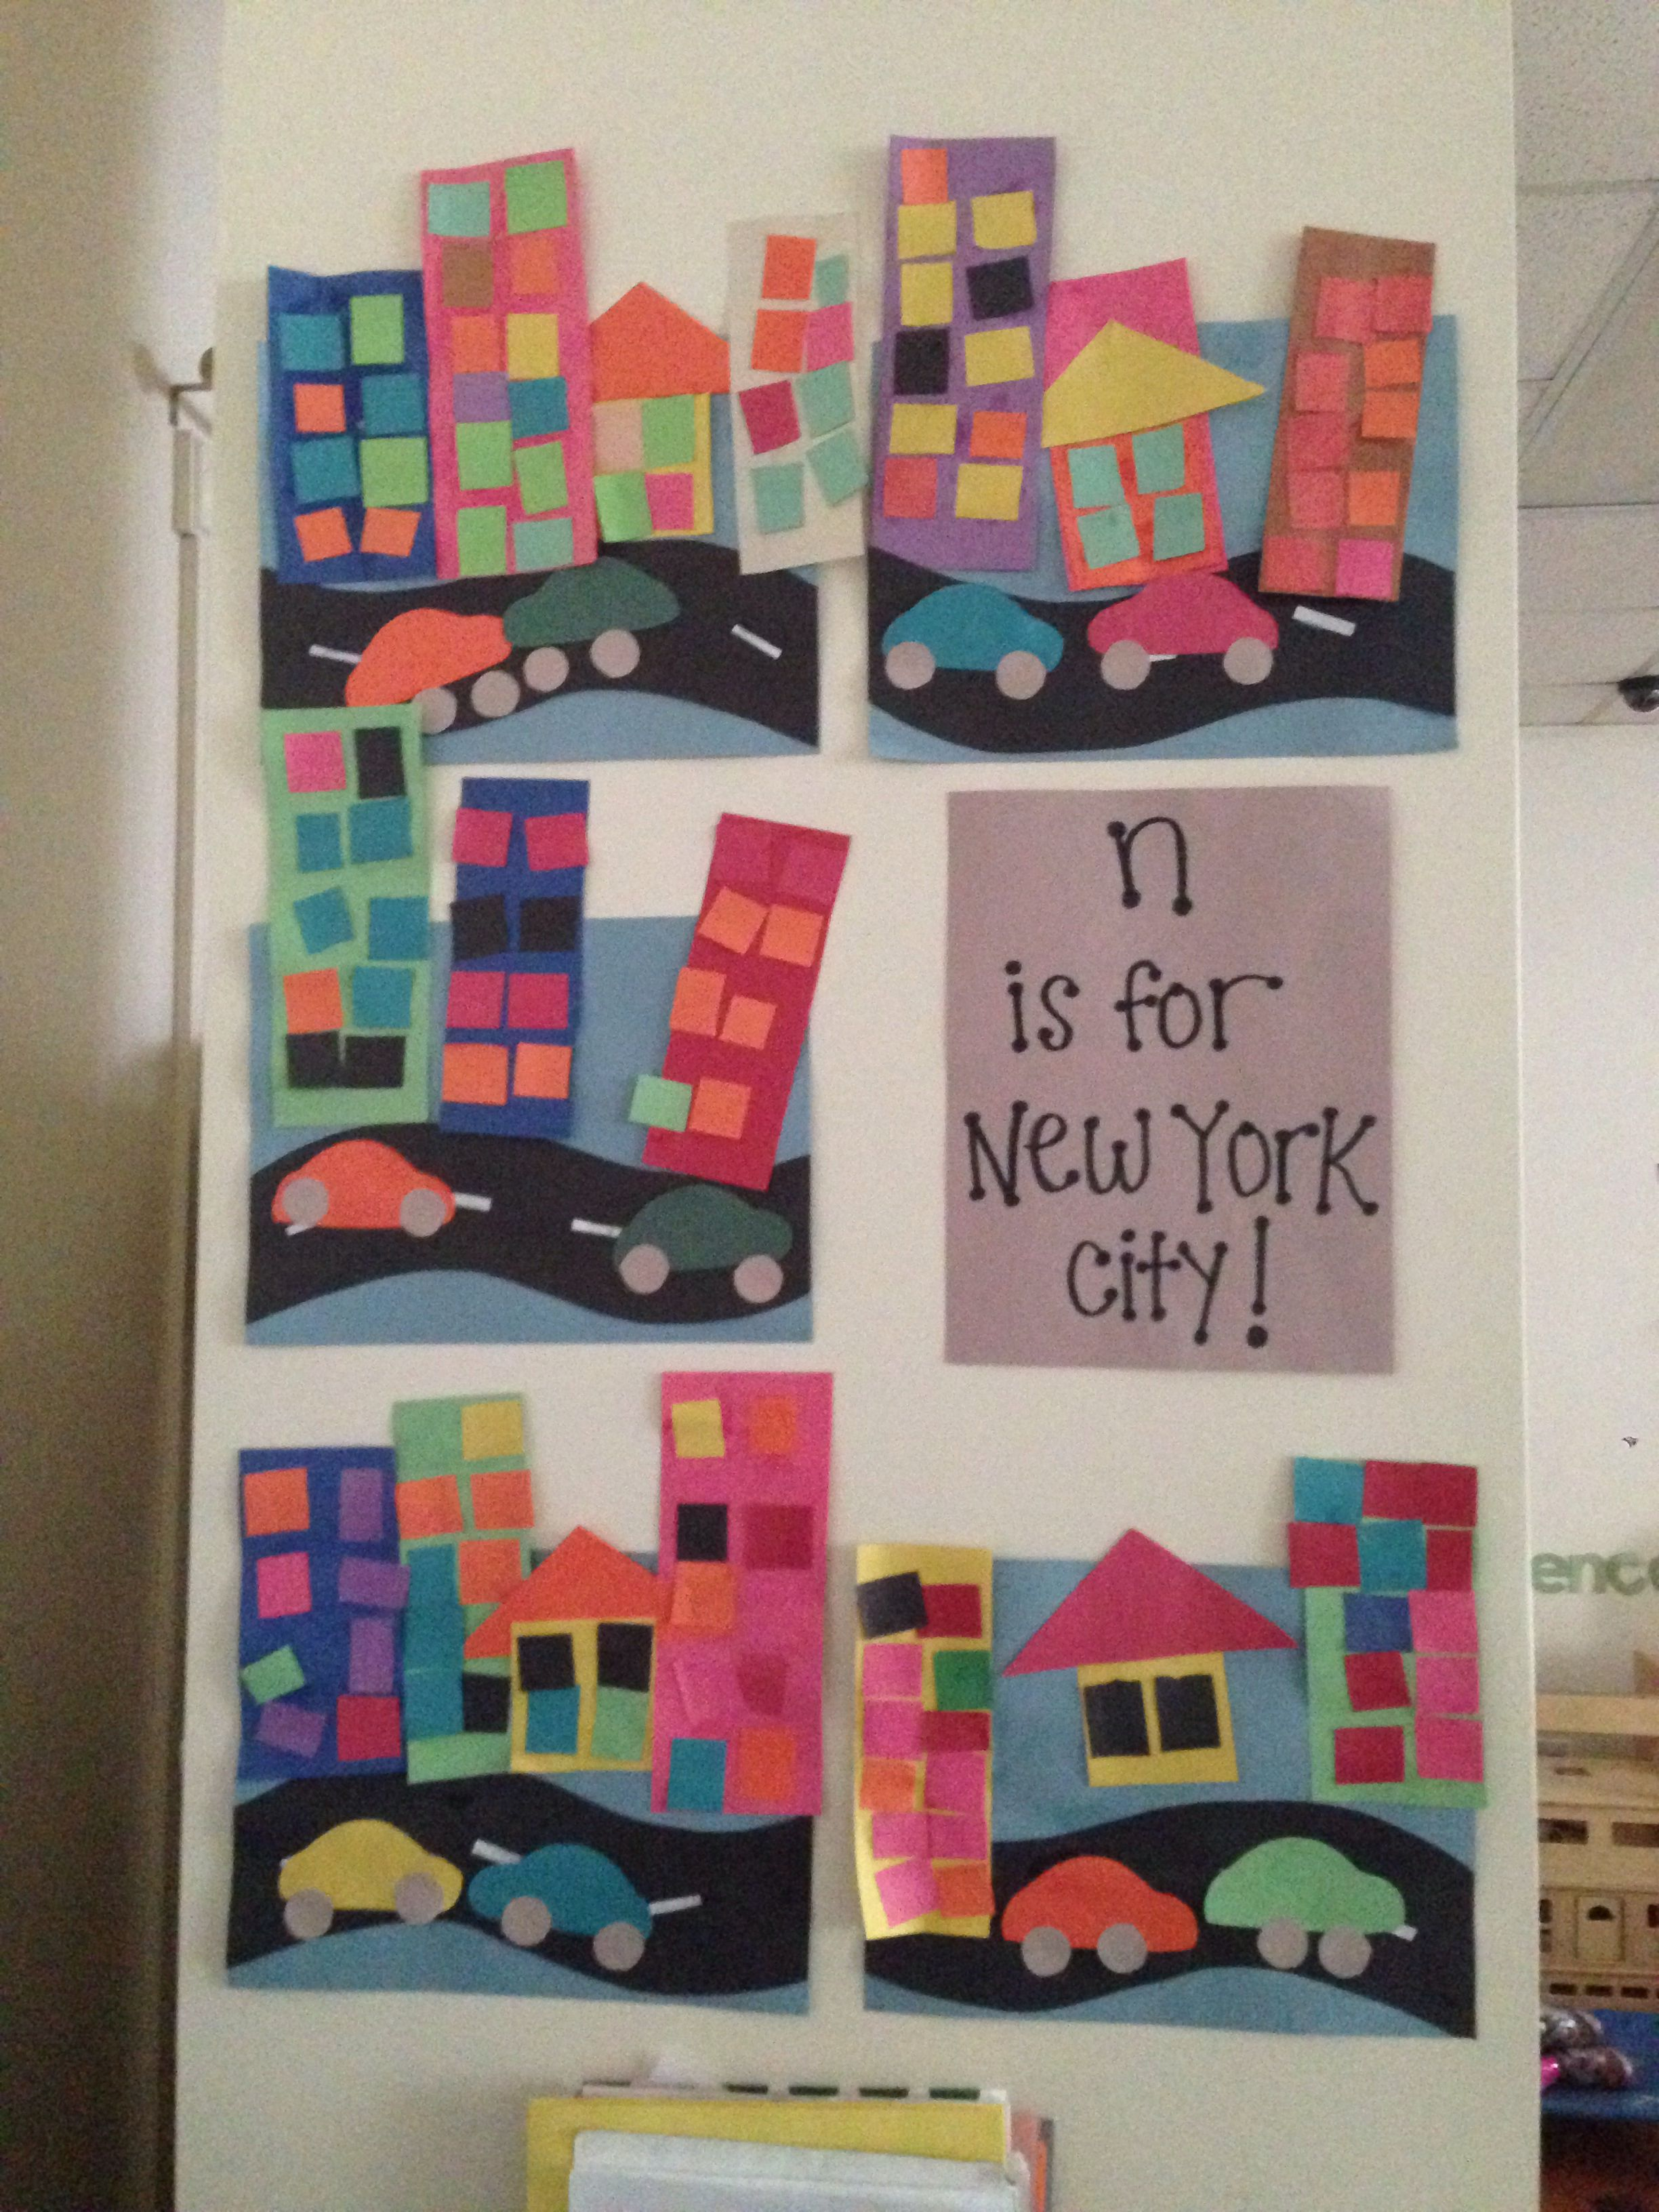 N Is For New York City